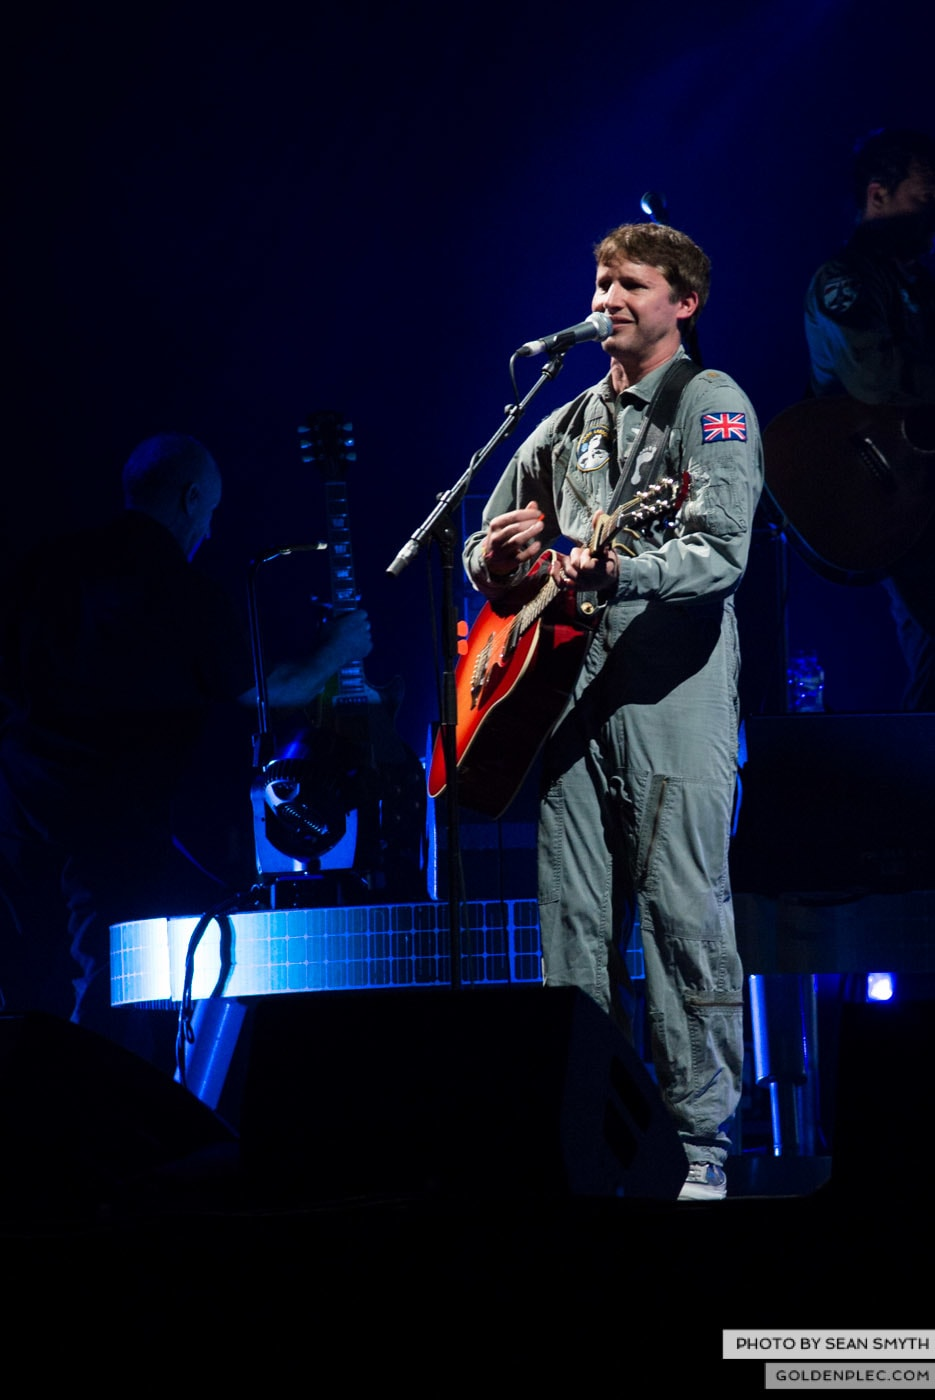 james-blunt-at-3arena-by-sean-smyth-20-11-14-24-of-29